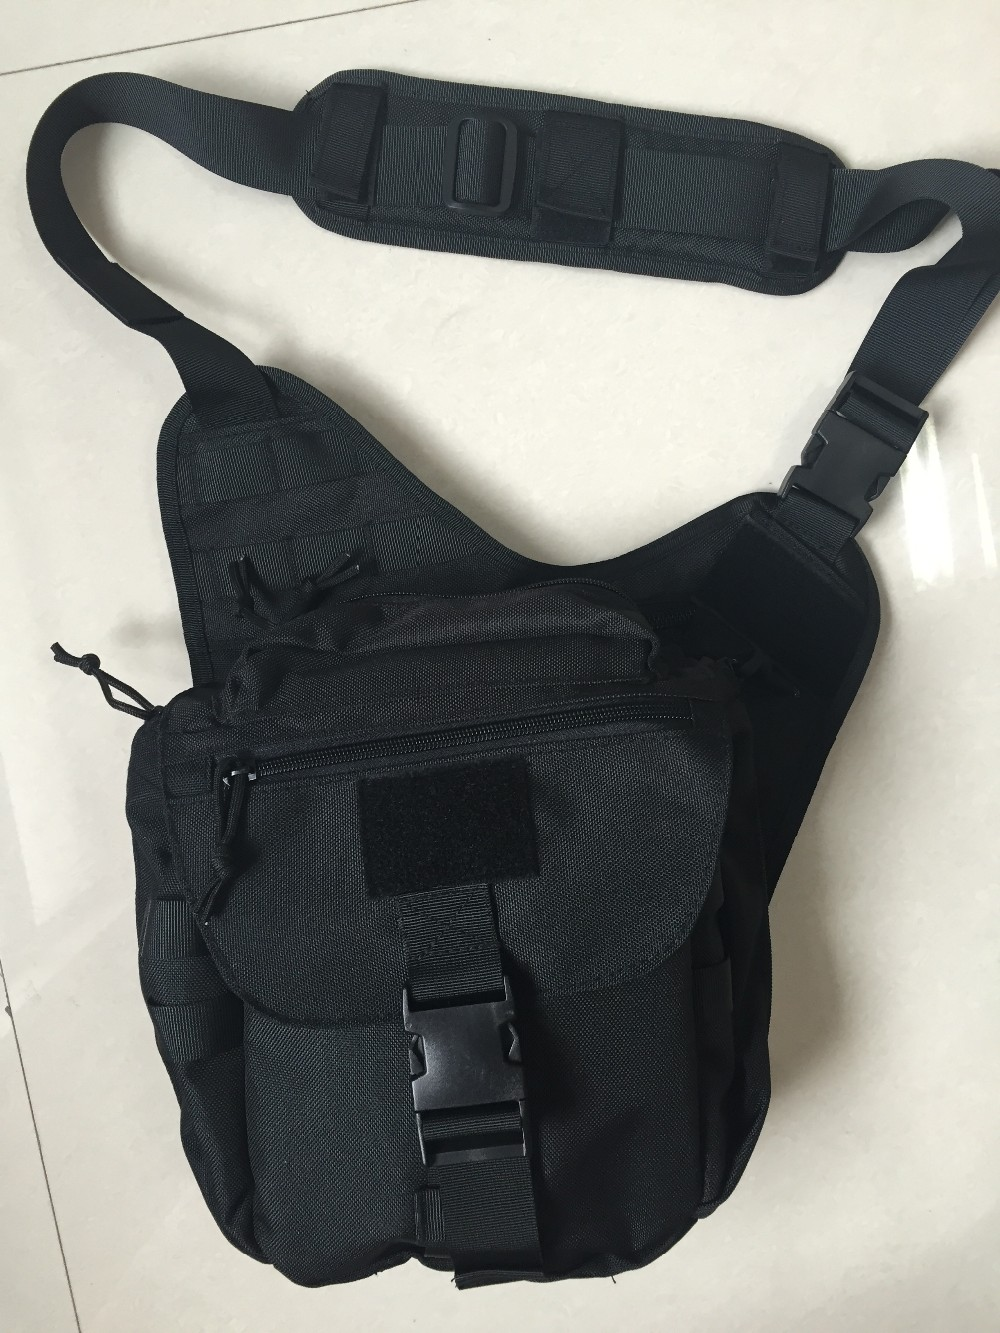 tactical shoulder bag,combat shoulder bag,outdoor multifunctional bag